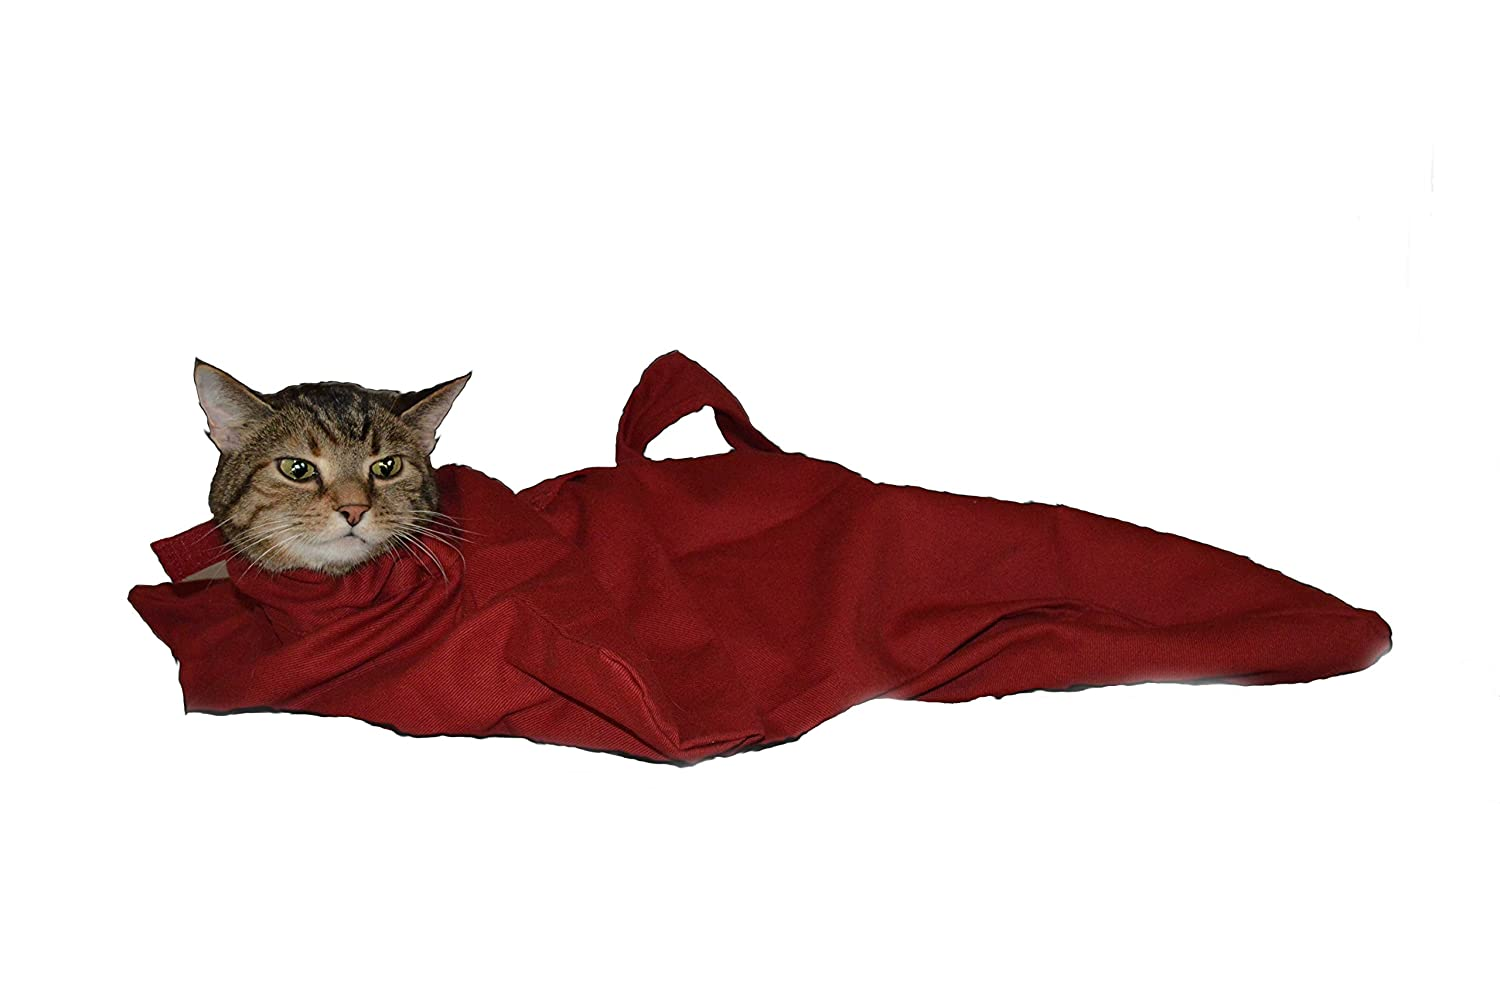 Amazon.com : Cat-in-the-bag Cozy Comfort Carrier (XL, Red) : Pet ...